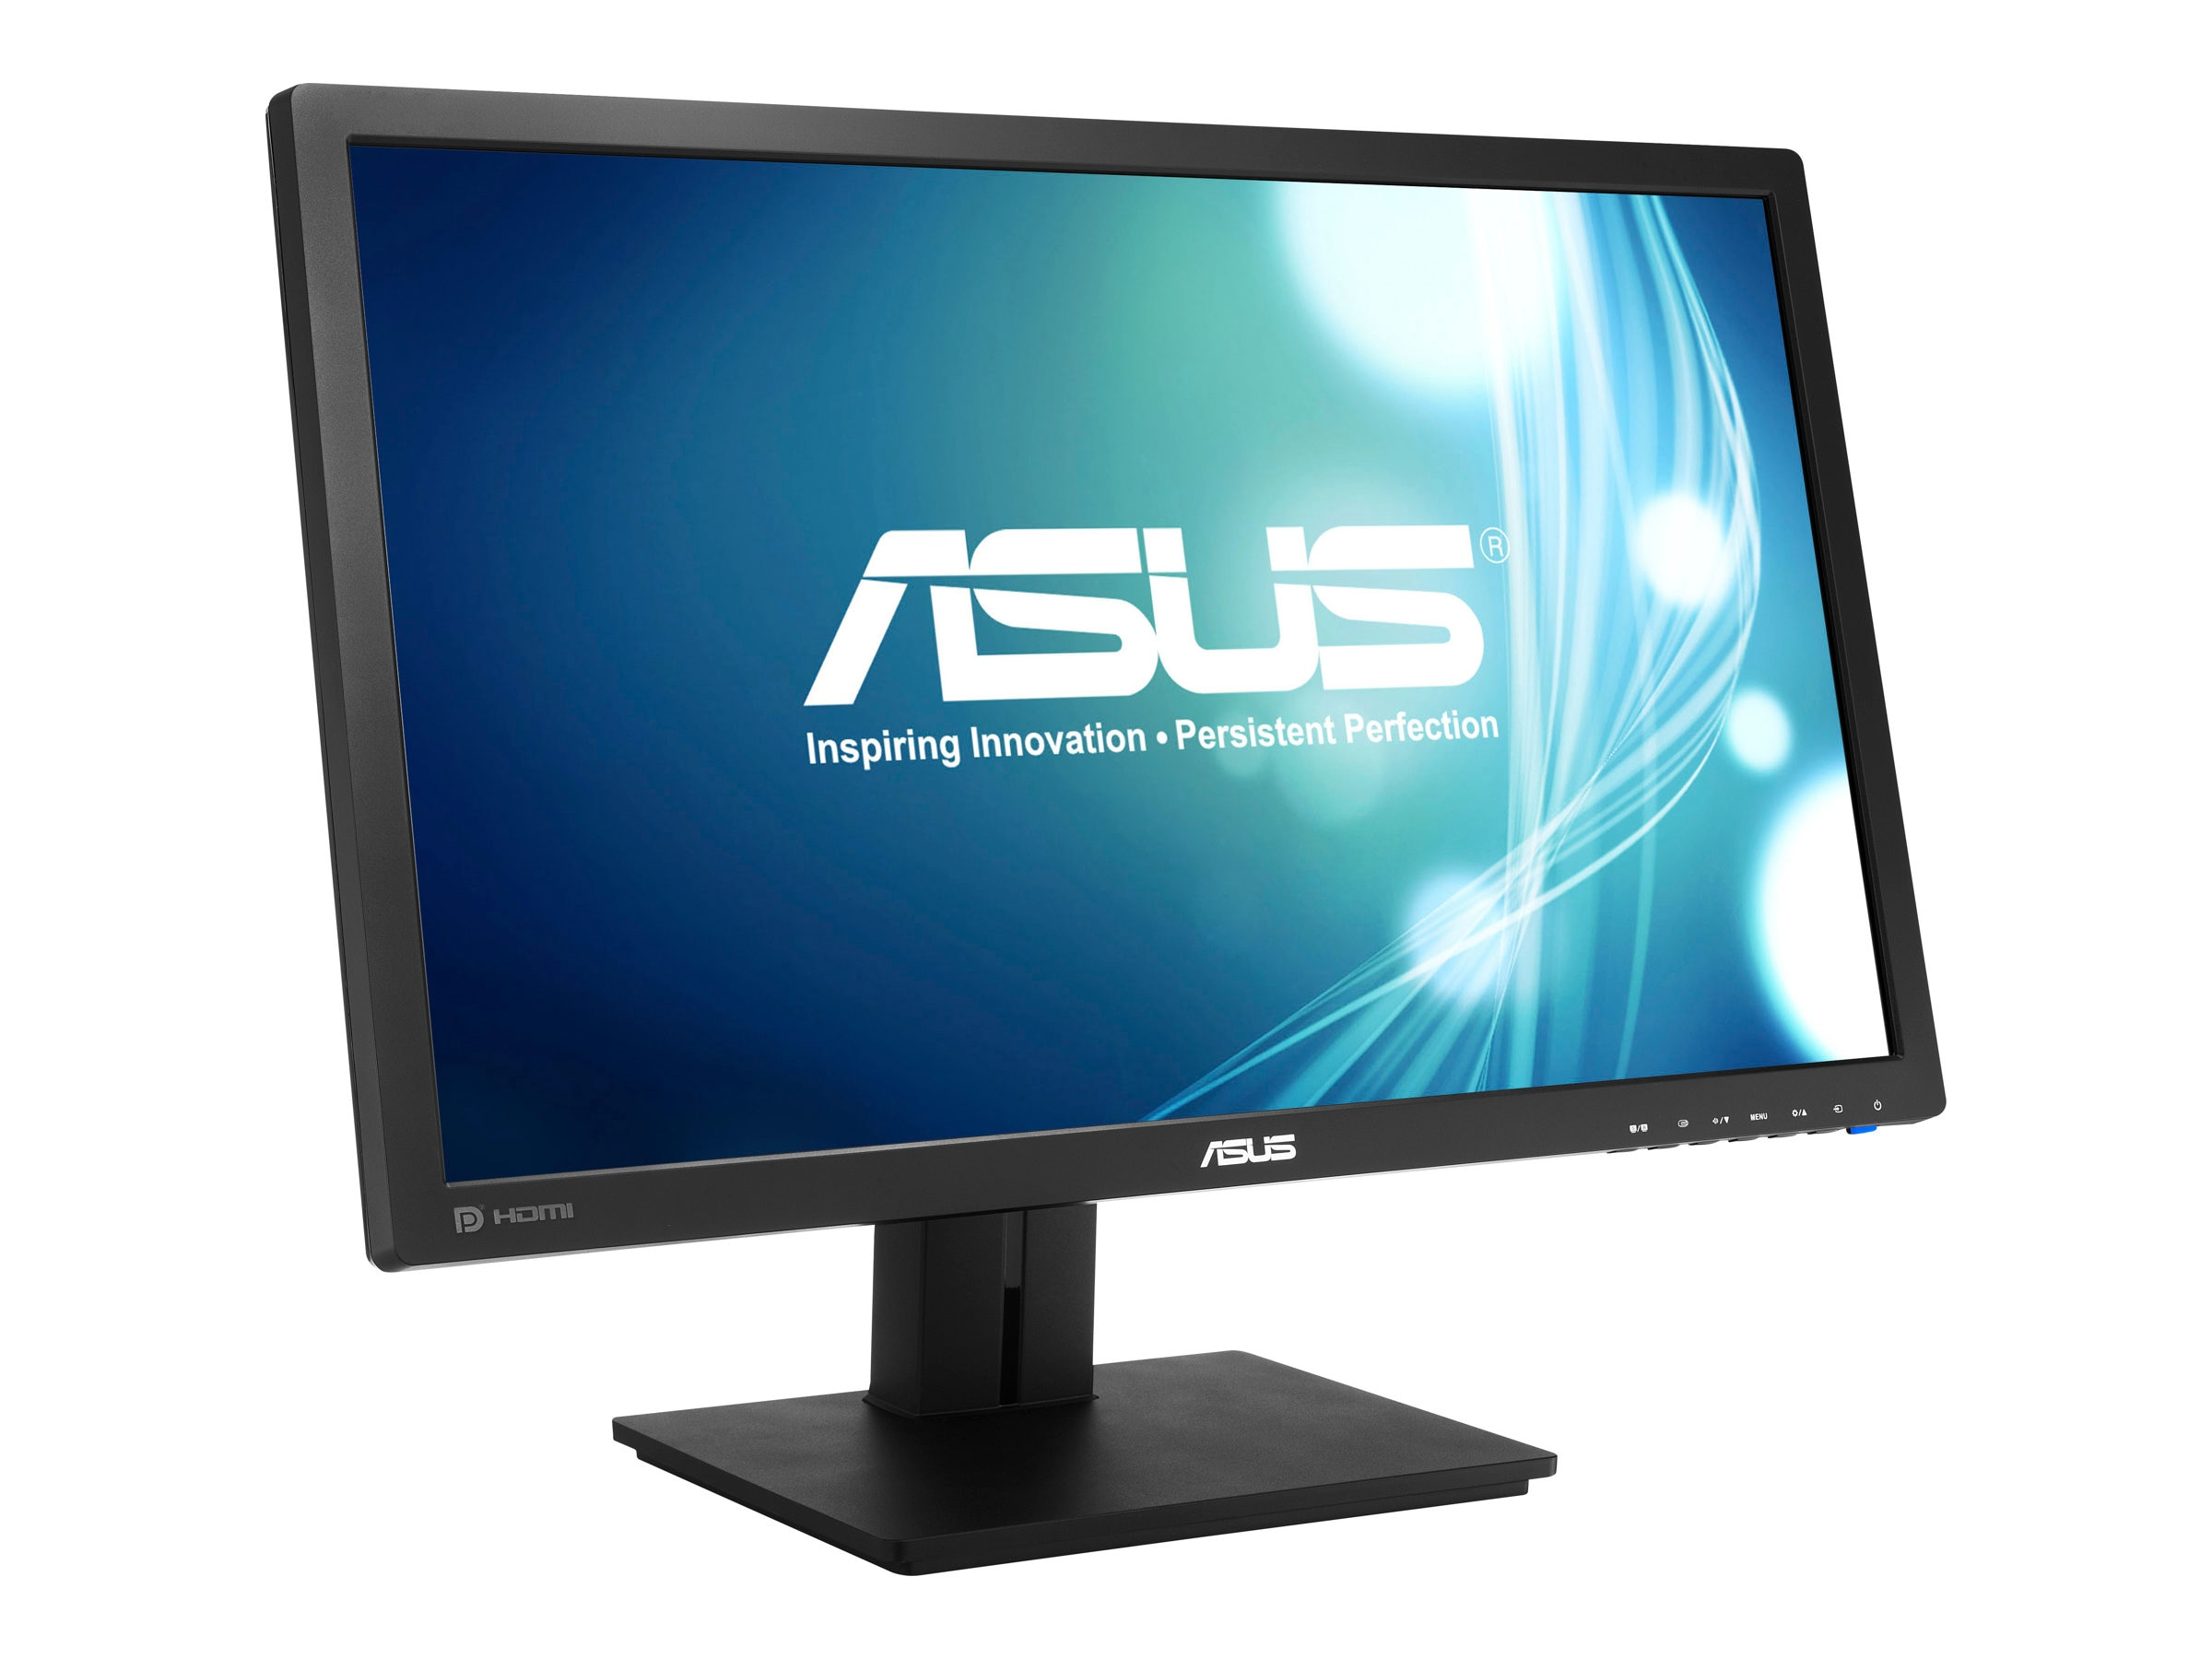 Asus 27 PB278Q LED-LCD Monitor, Black, PB278Q, 14847202, Monitors - LED-LCD